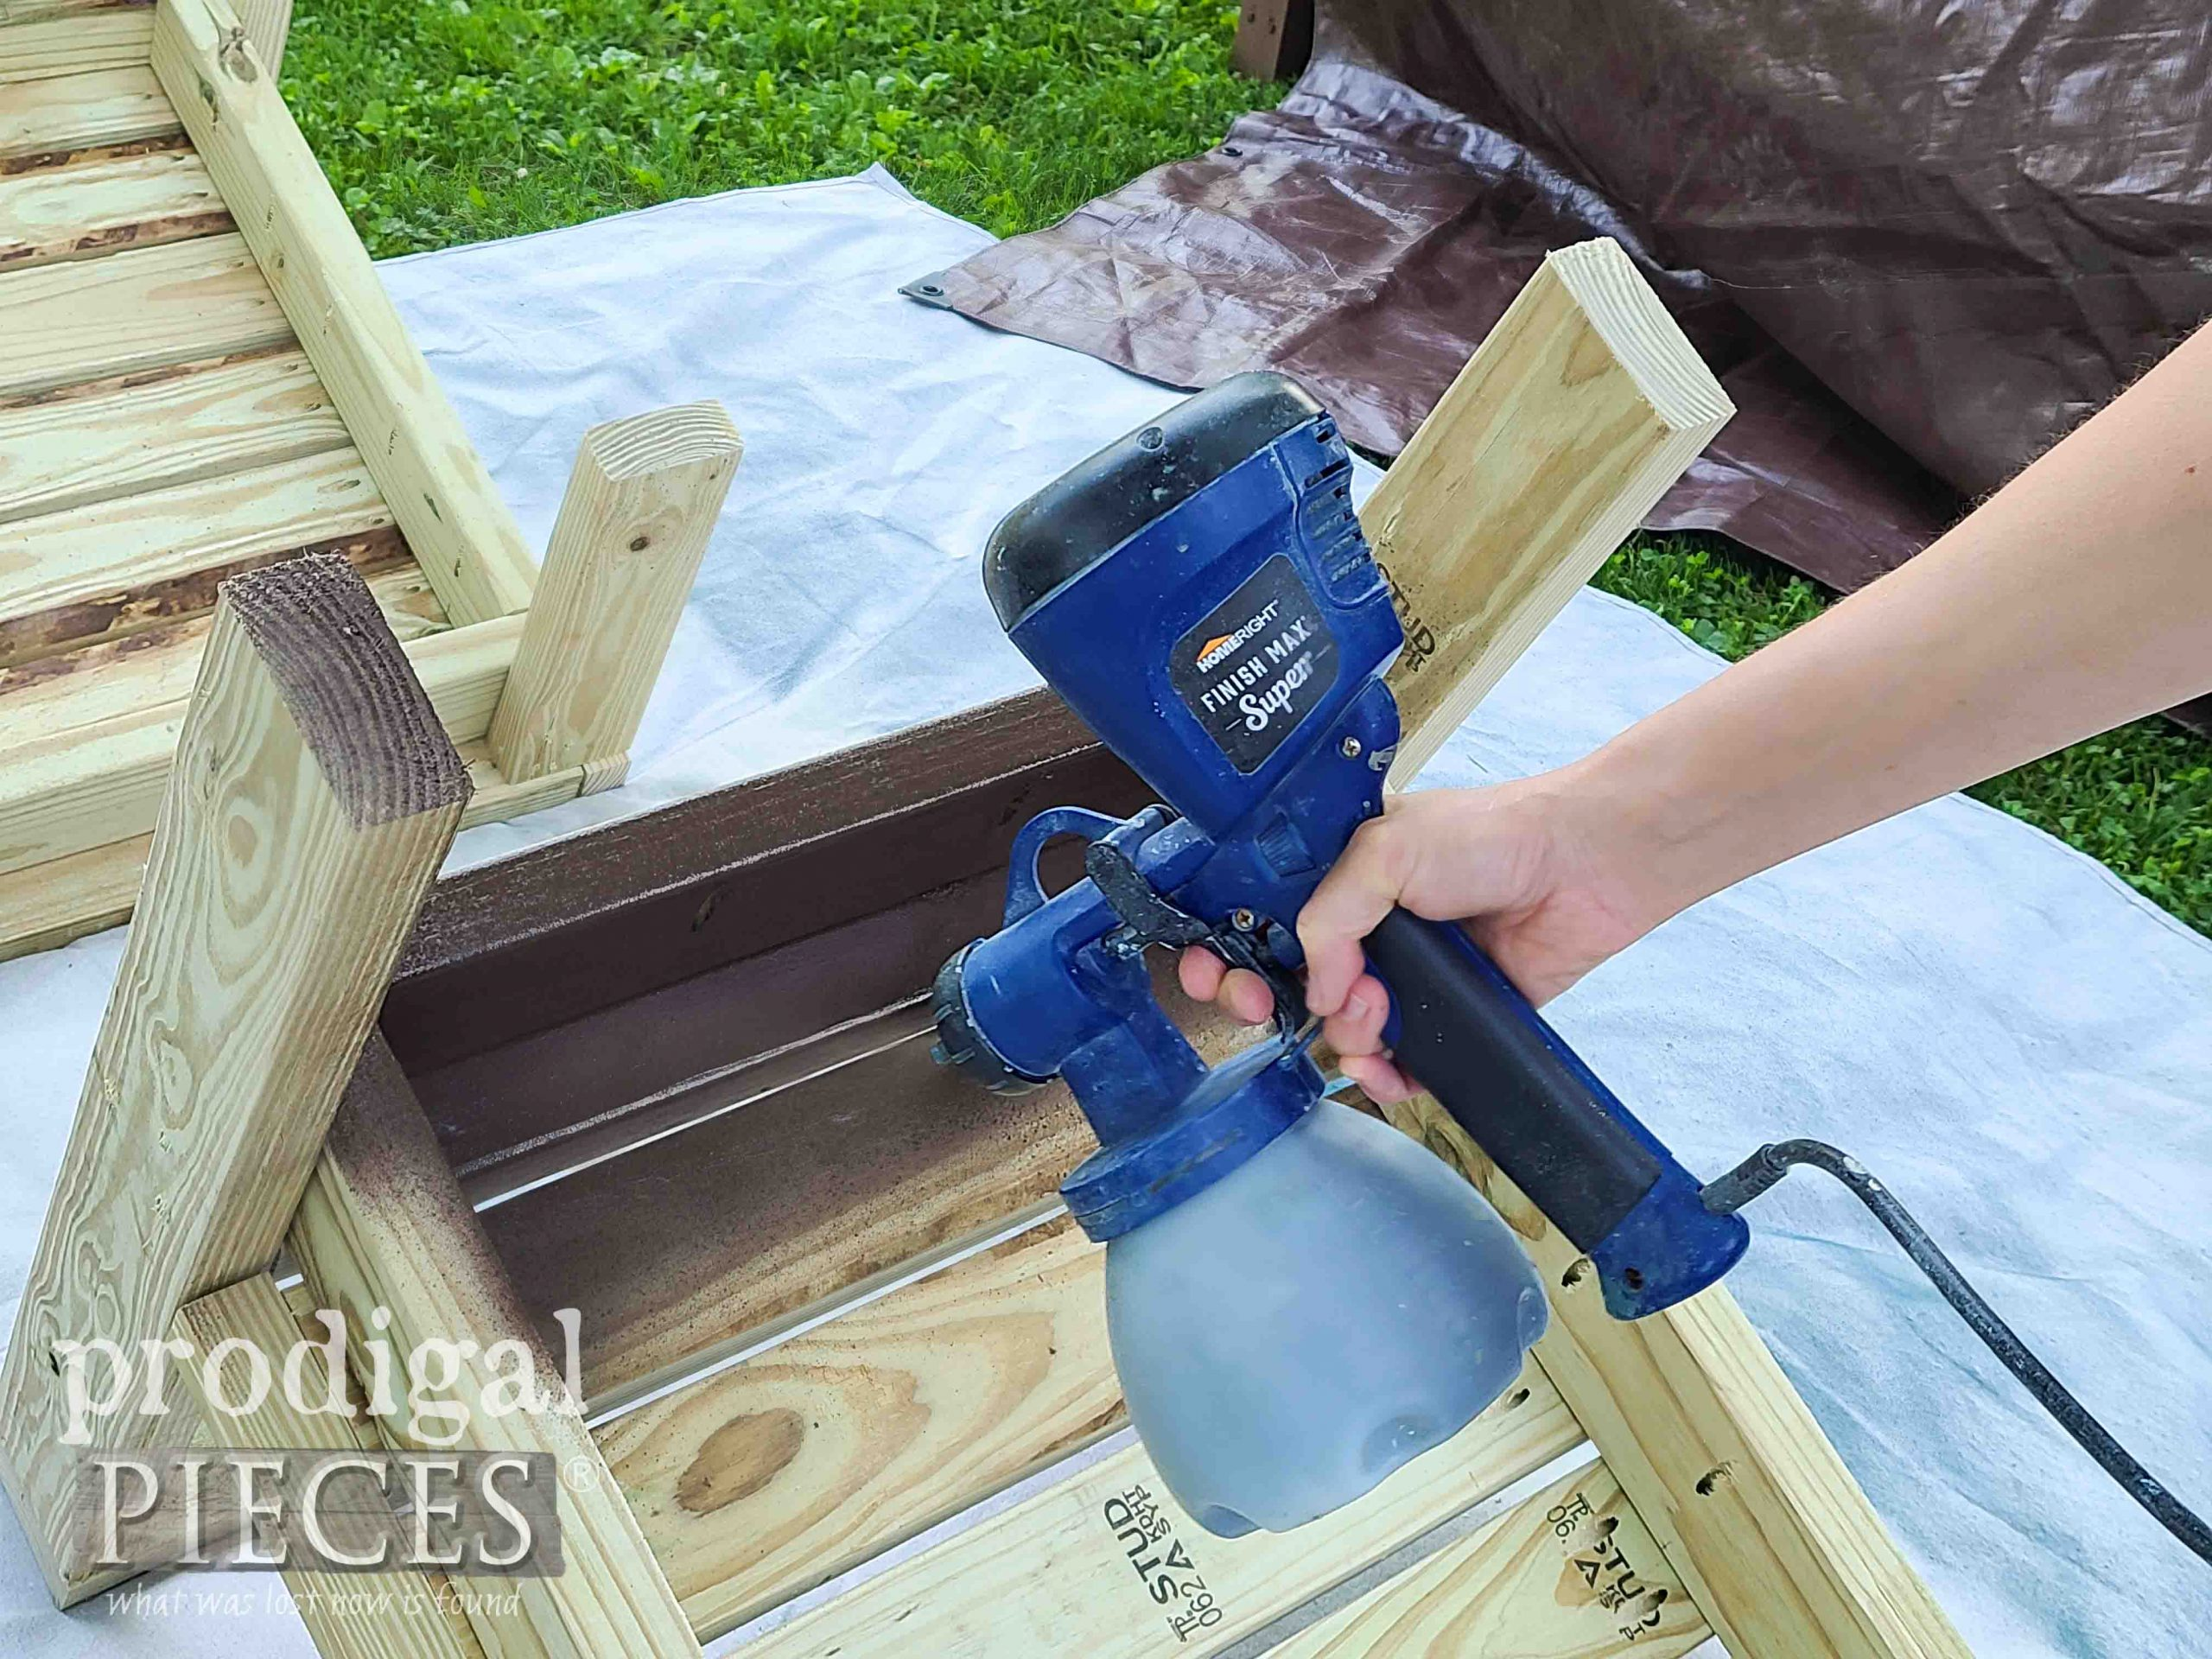 HomeRight Super Finish Max Sprayer for Staining DIY Patio Sectional by Prodigal Pieces | prodigalpieces.com #prodigalpieces #diy #home